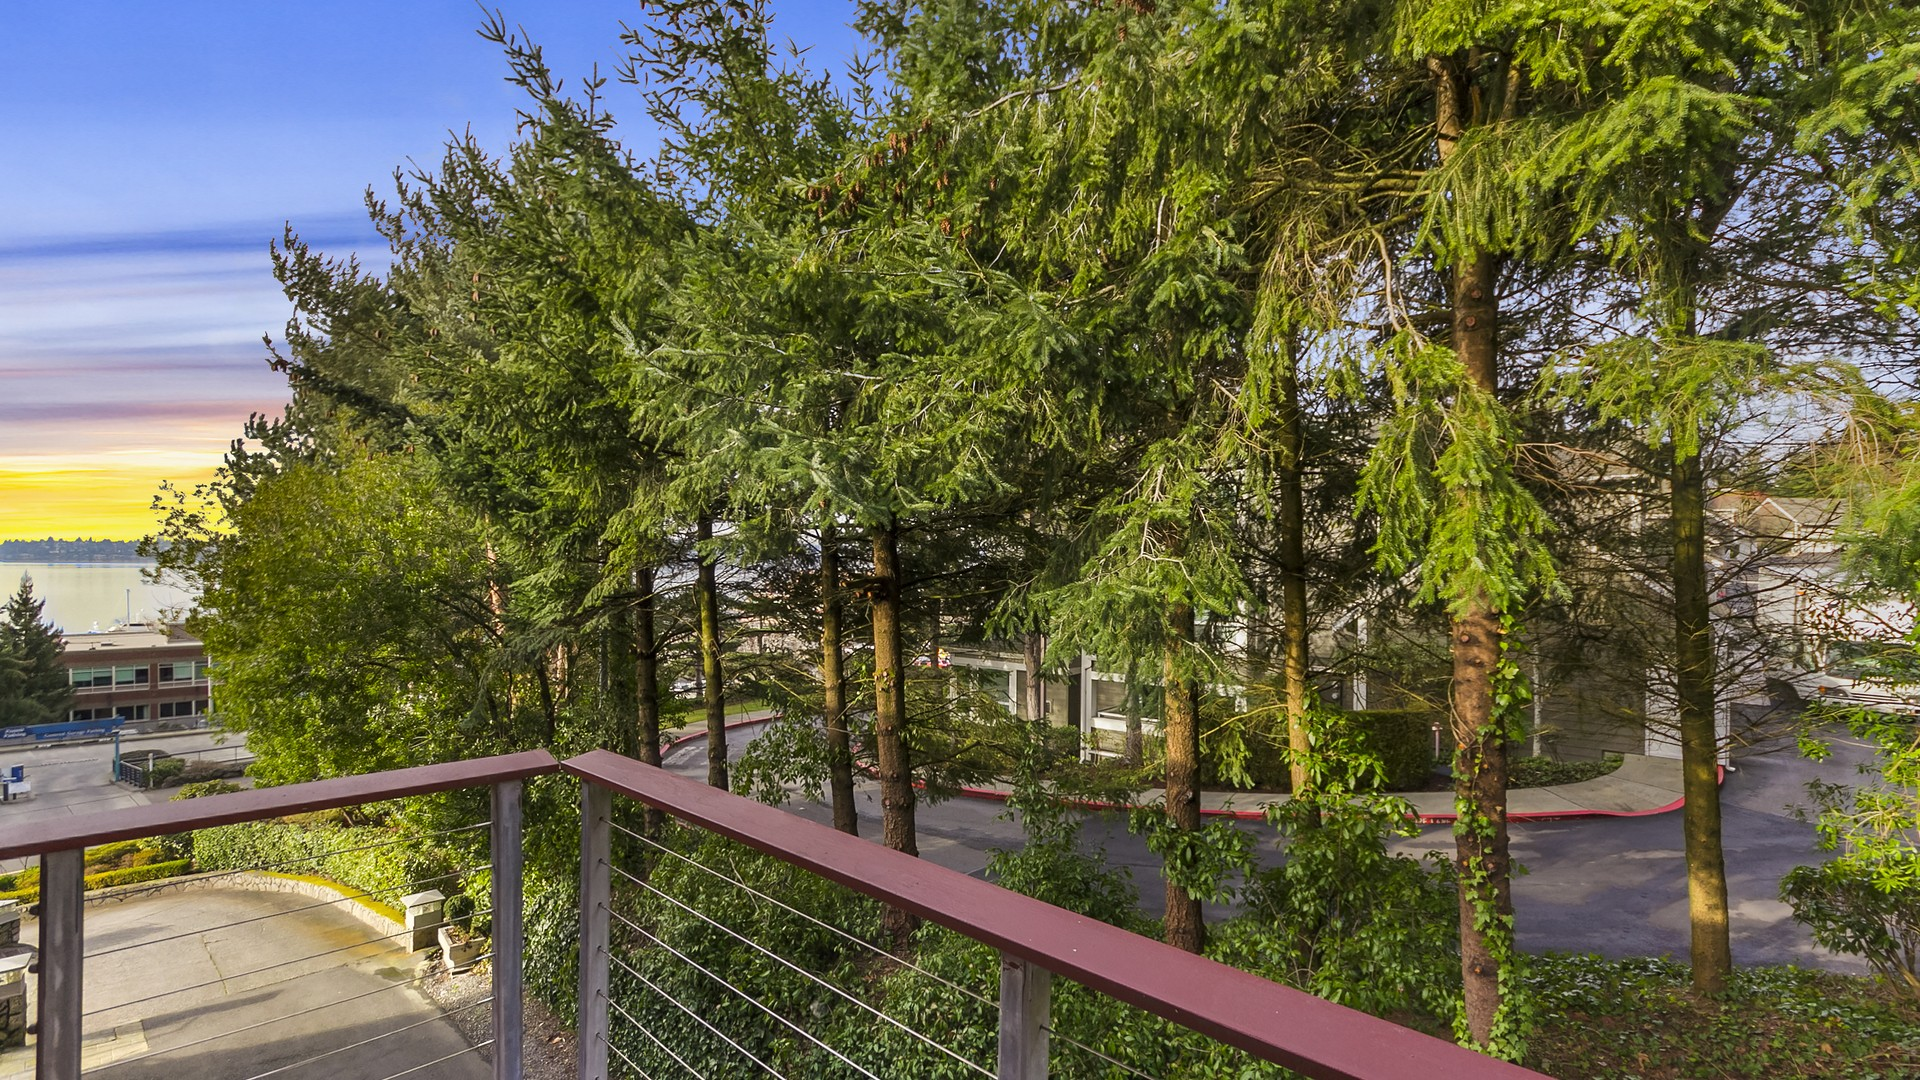 Terreno por un Venta en Multi-Family Residential Land 5210 Lake Washington Blvd Kirkland, Washington 98033 Estados Unidos